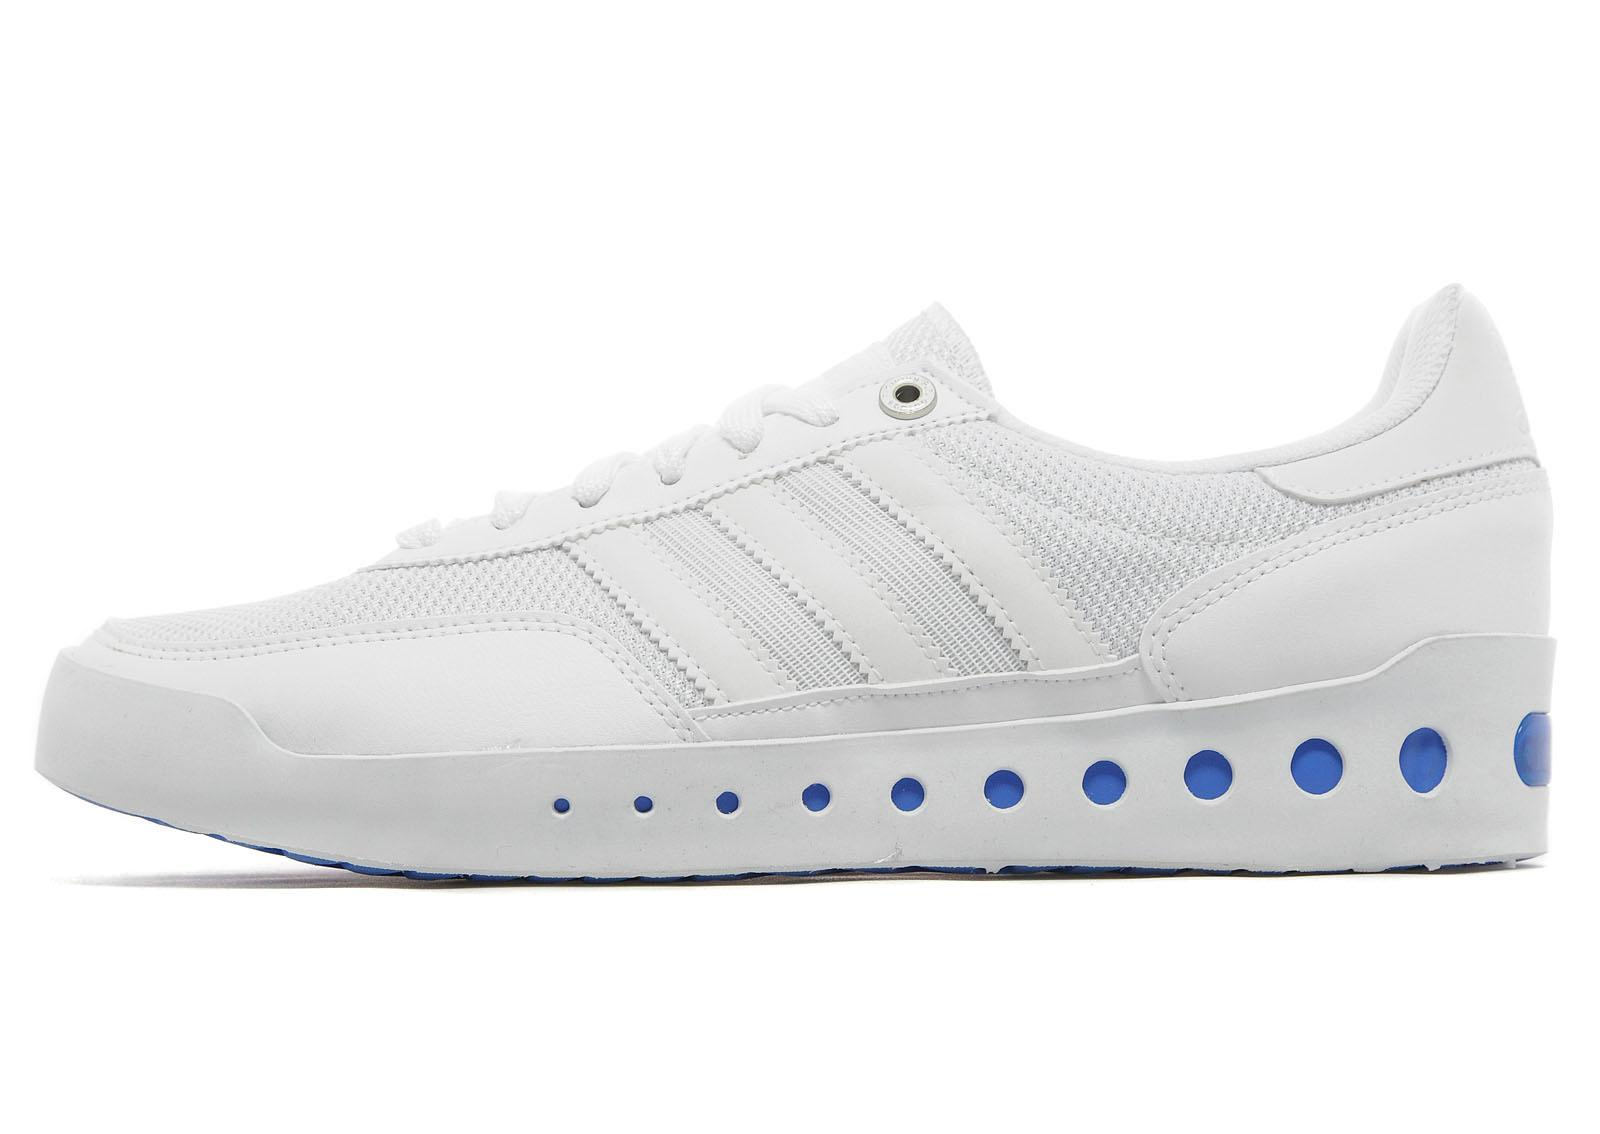 pt adidas trainers jd